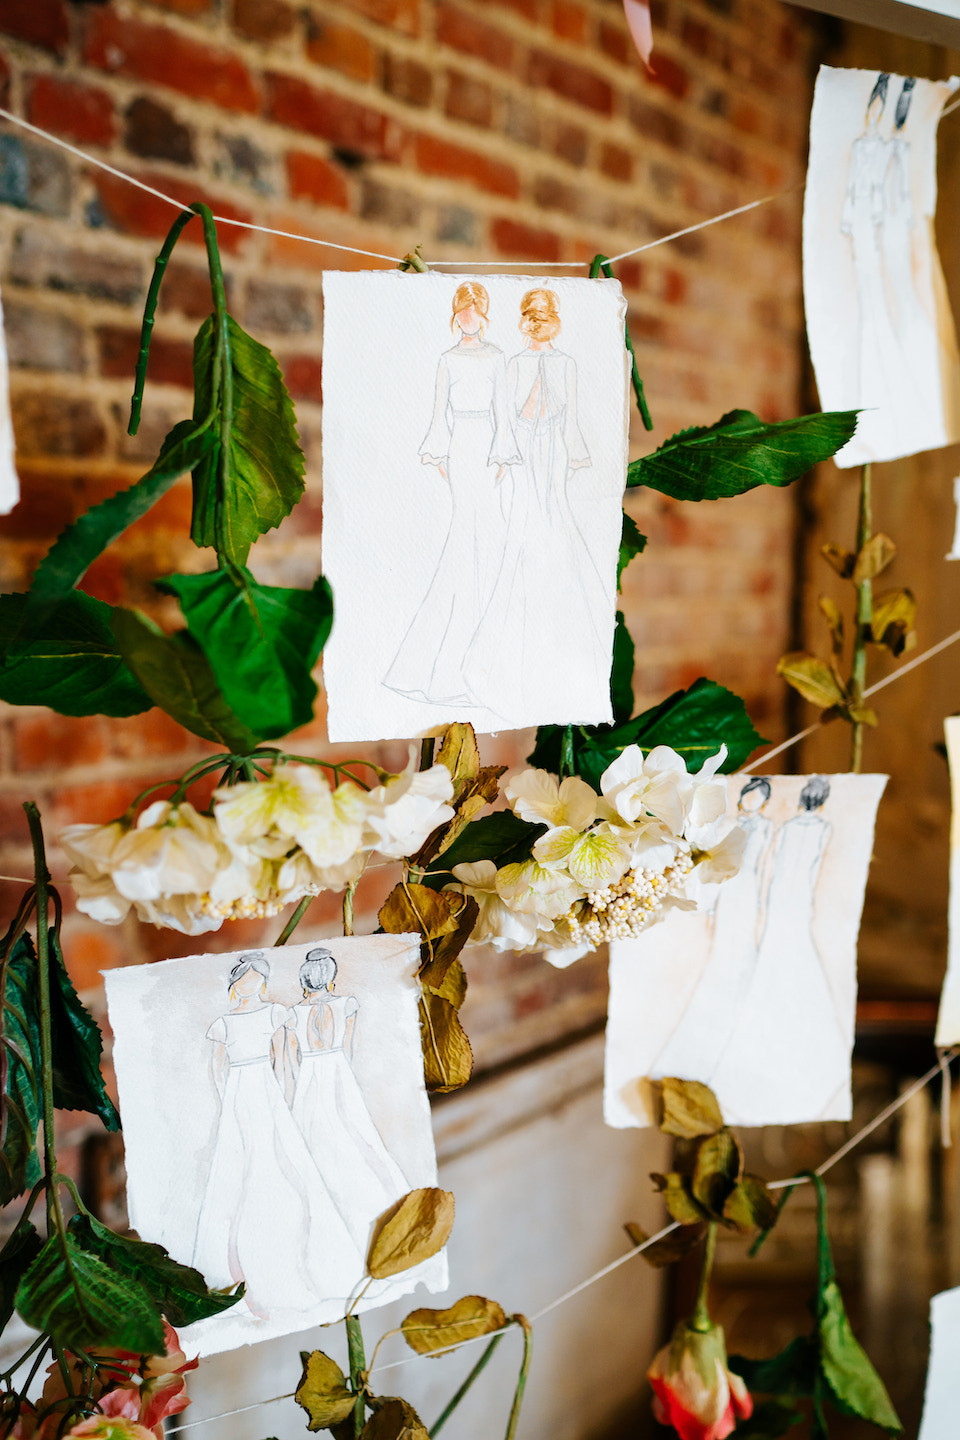 Jessica Turner Designs hand painted sketches to reduce the use of raw materials